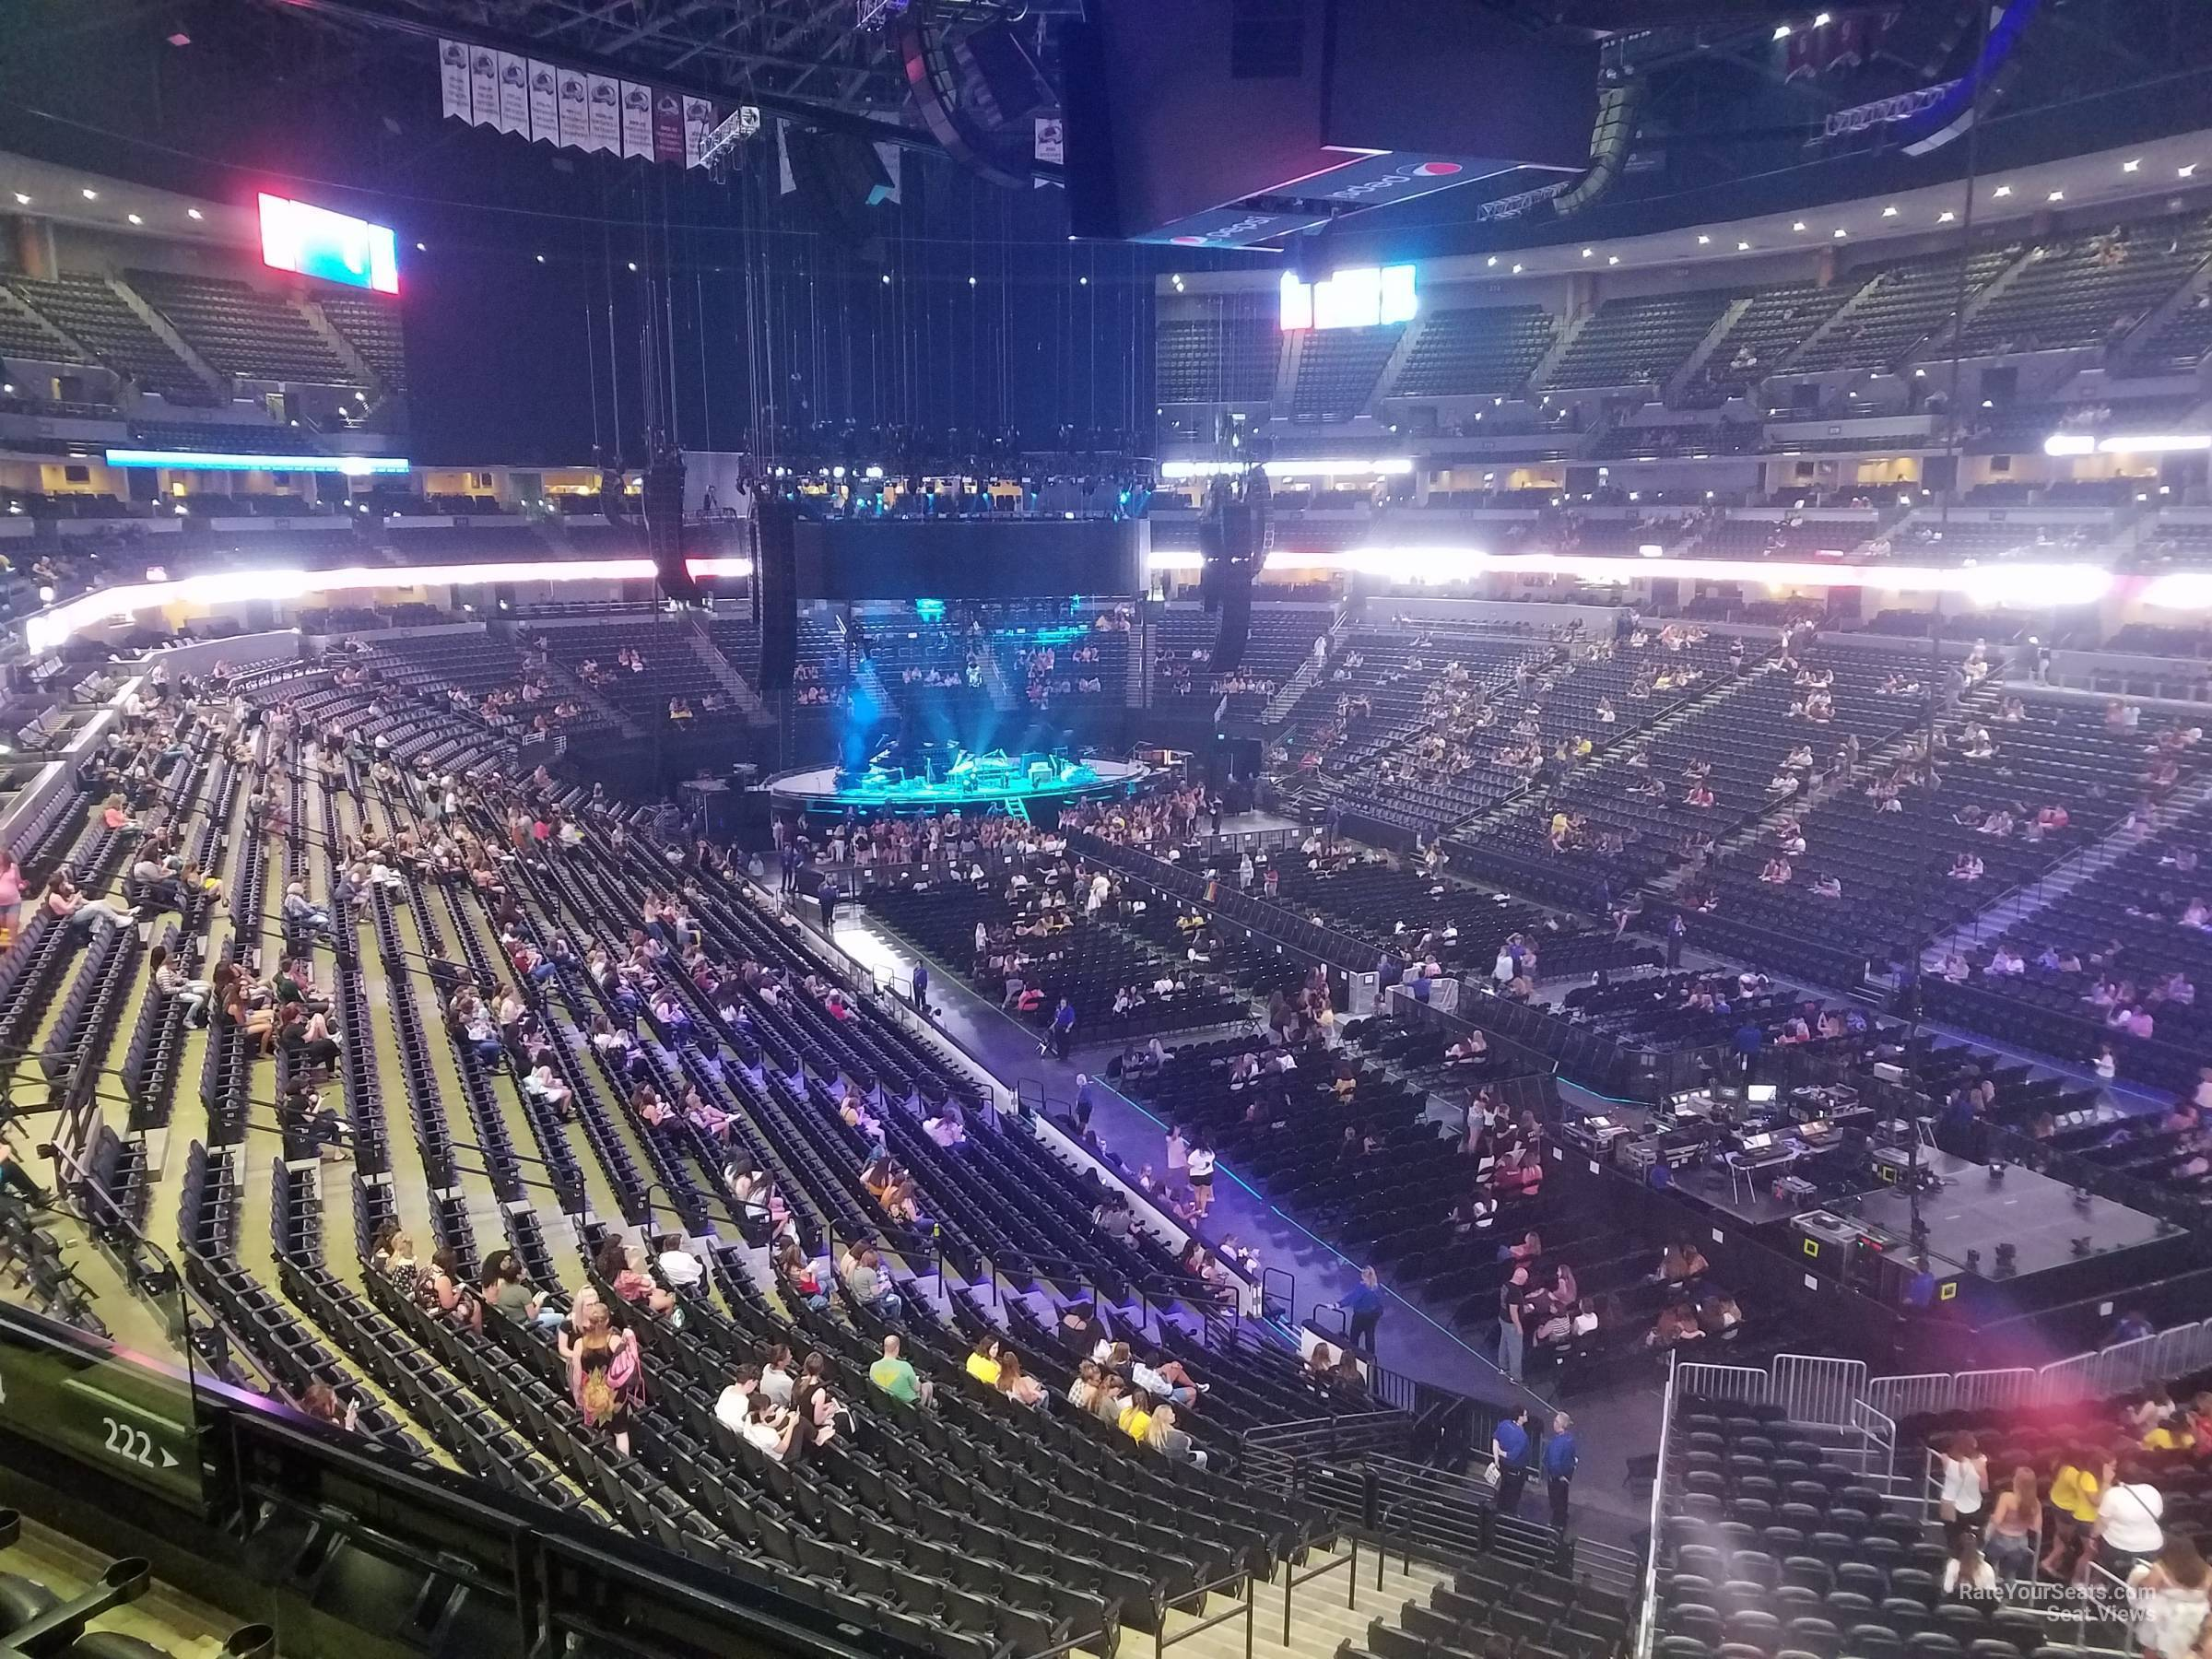 Section 222 At Pepsi Center For Concerts Rateyourseats Com